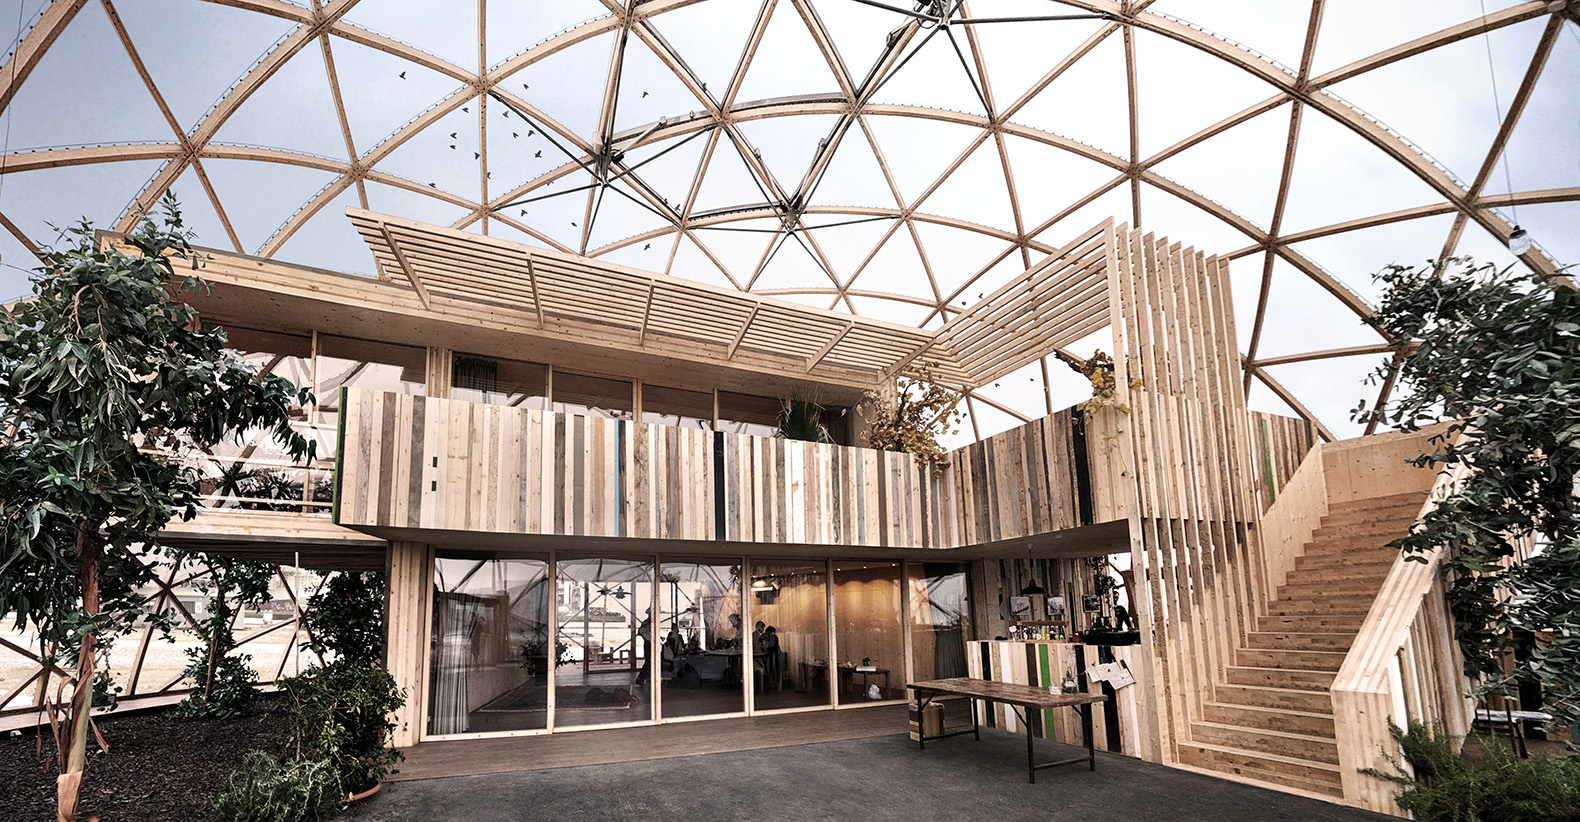 Solar Powered House >> Spectacular 'Dome of Visions' greenhouse pushes the envelope for wood construction | Inhabitat ...